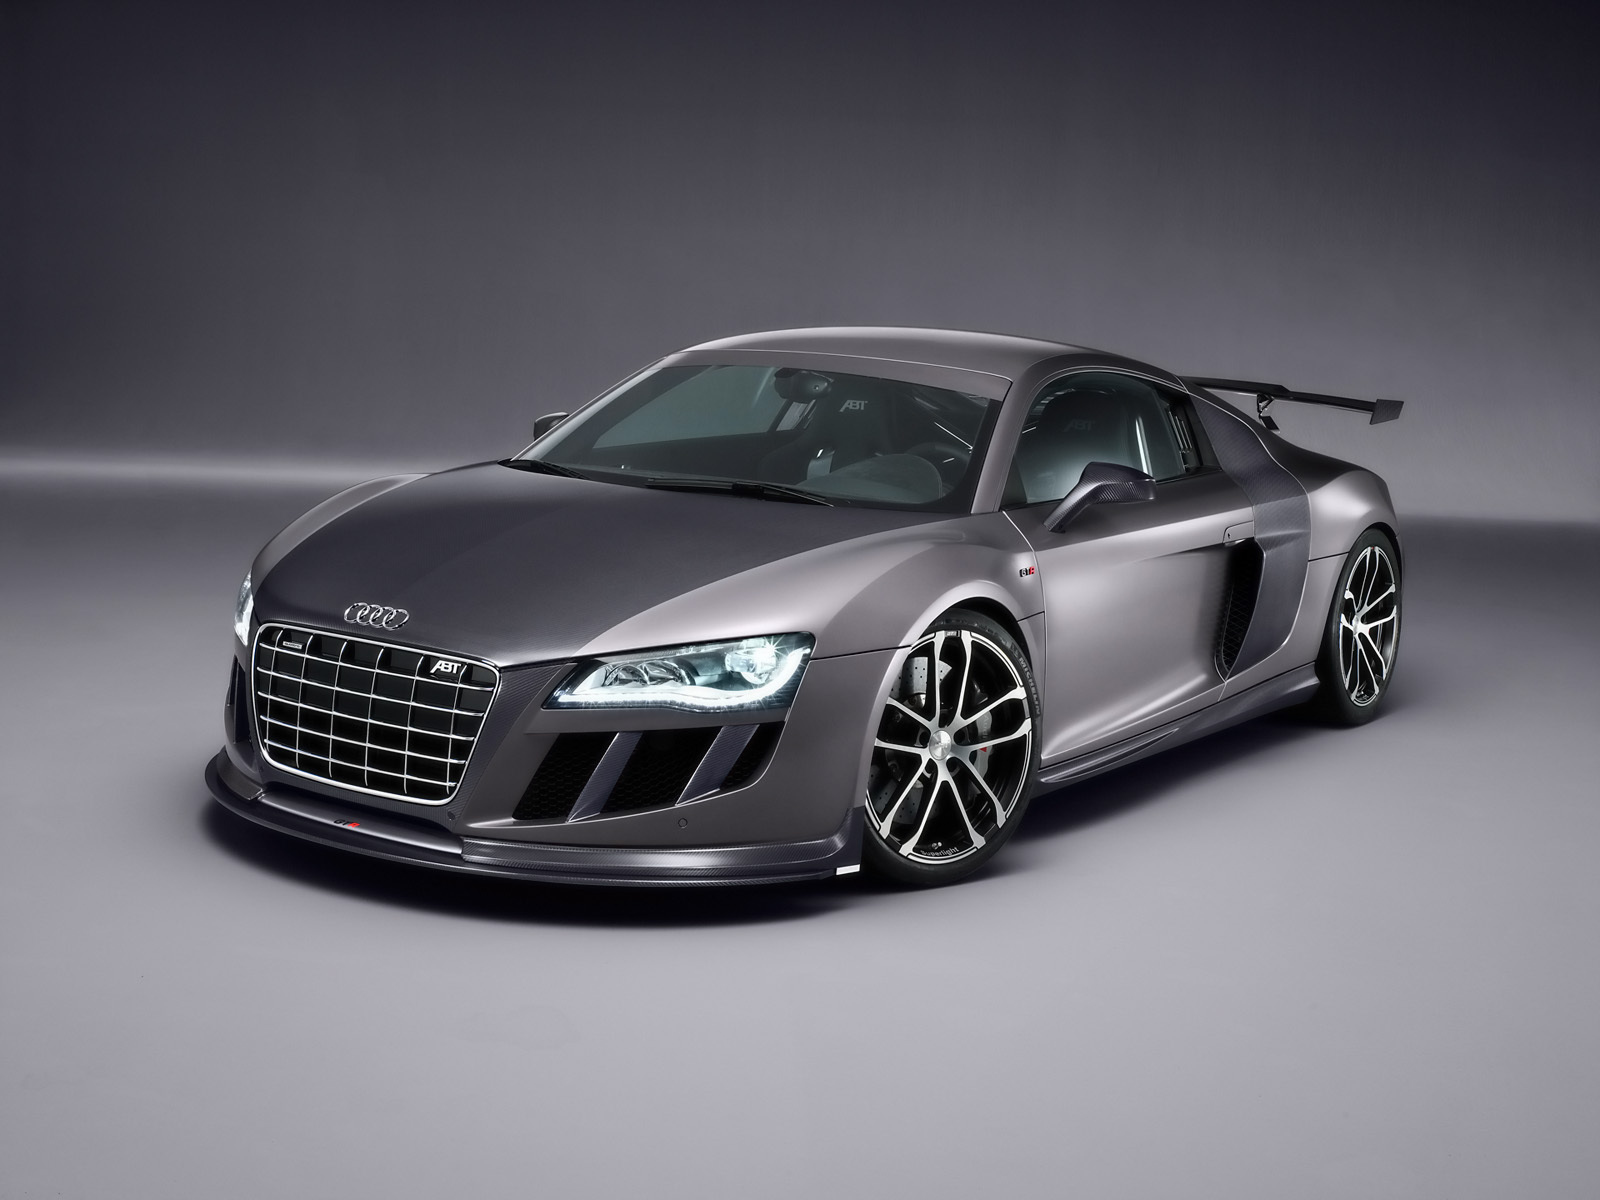 Awesome Audi Fastest Car Wallpaper 1 ABT AUDI R8 GTR   Audi Wallpaper